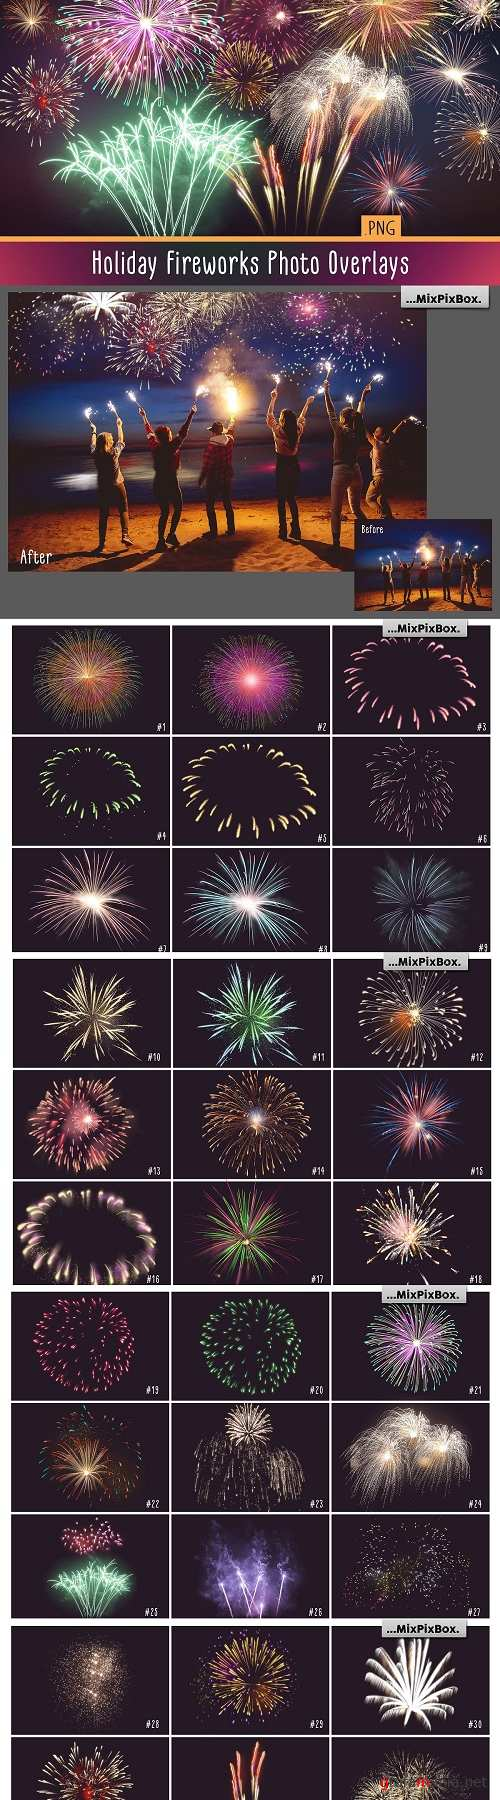 Holiday Fireworks Photo Overlays - 4137068